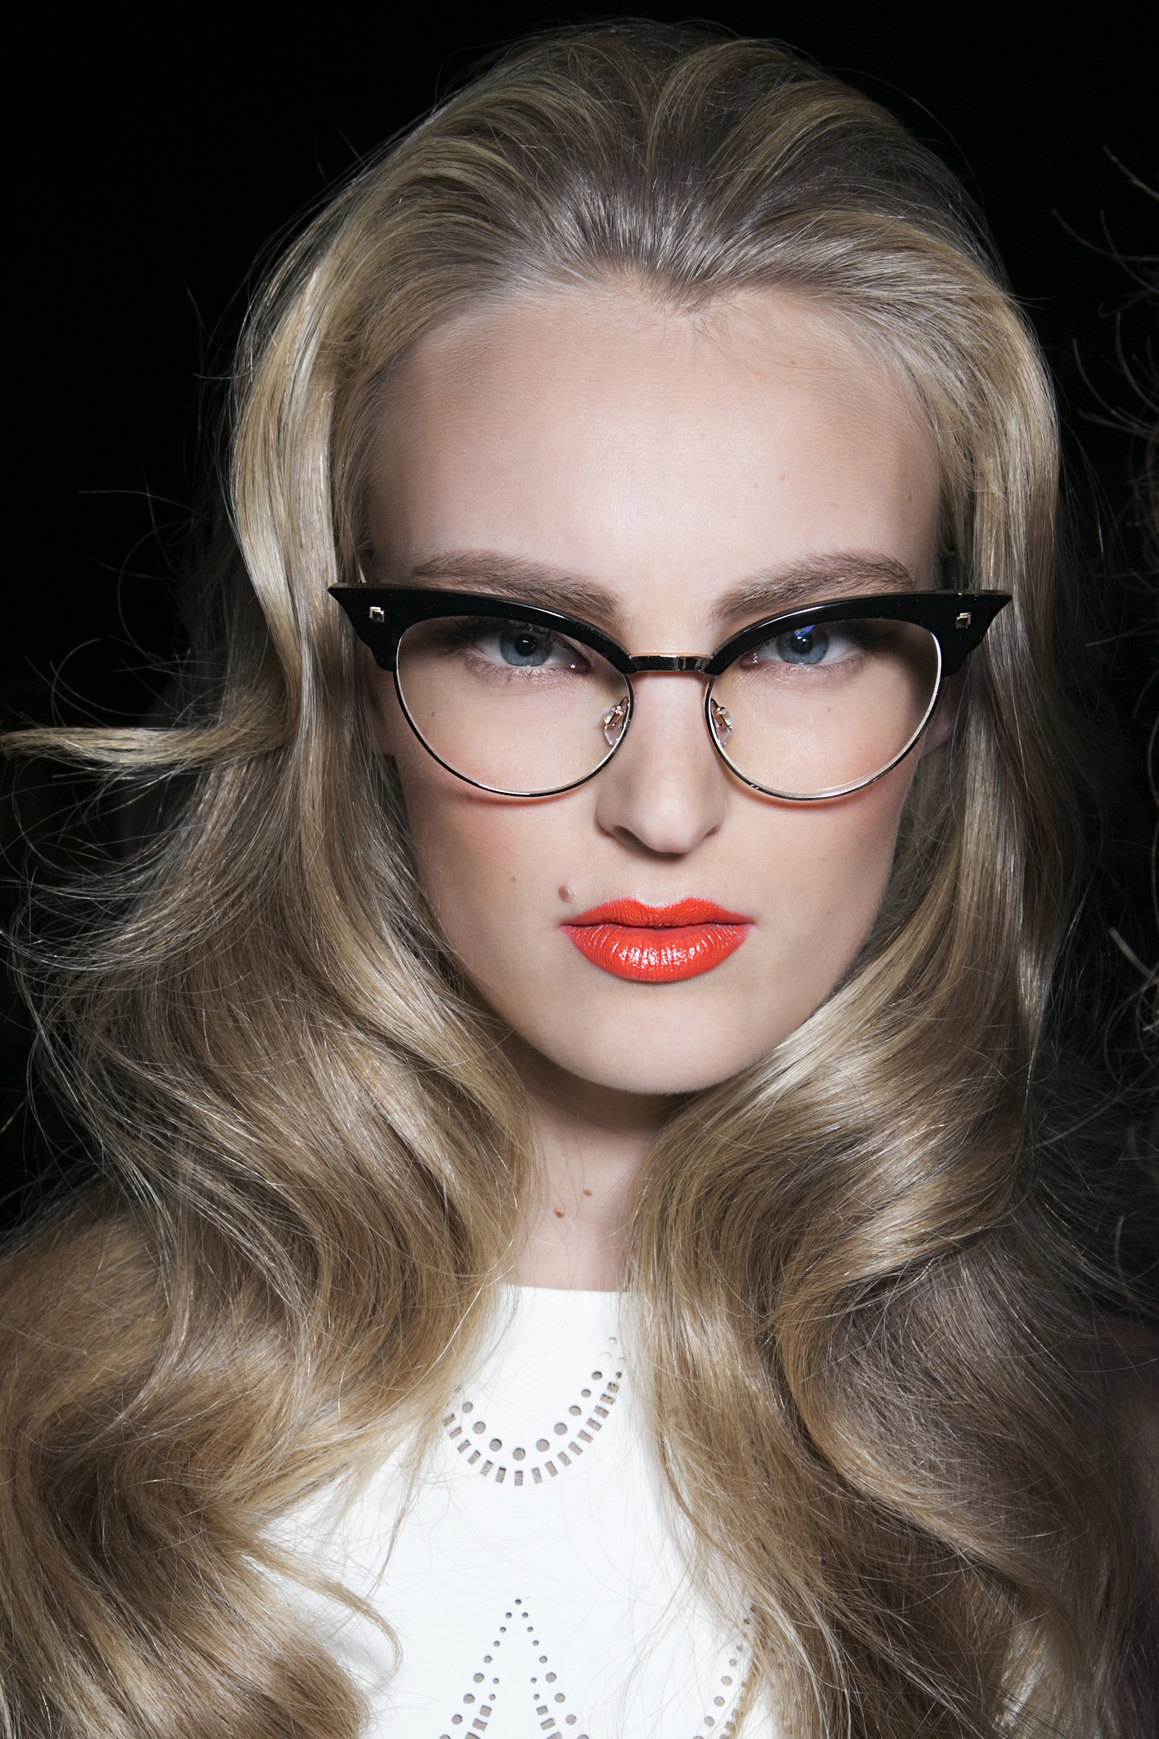 Wearing Makeup With Glasses: 6 Areas to FocusOn